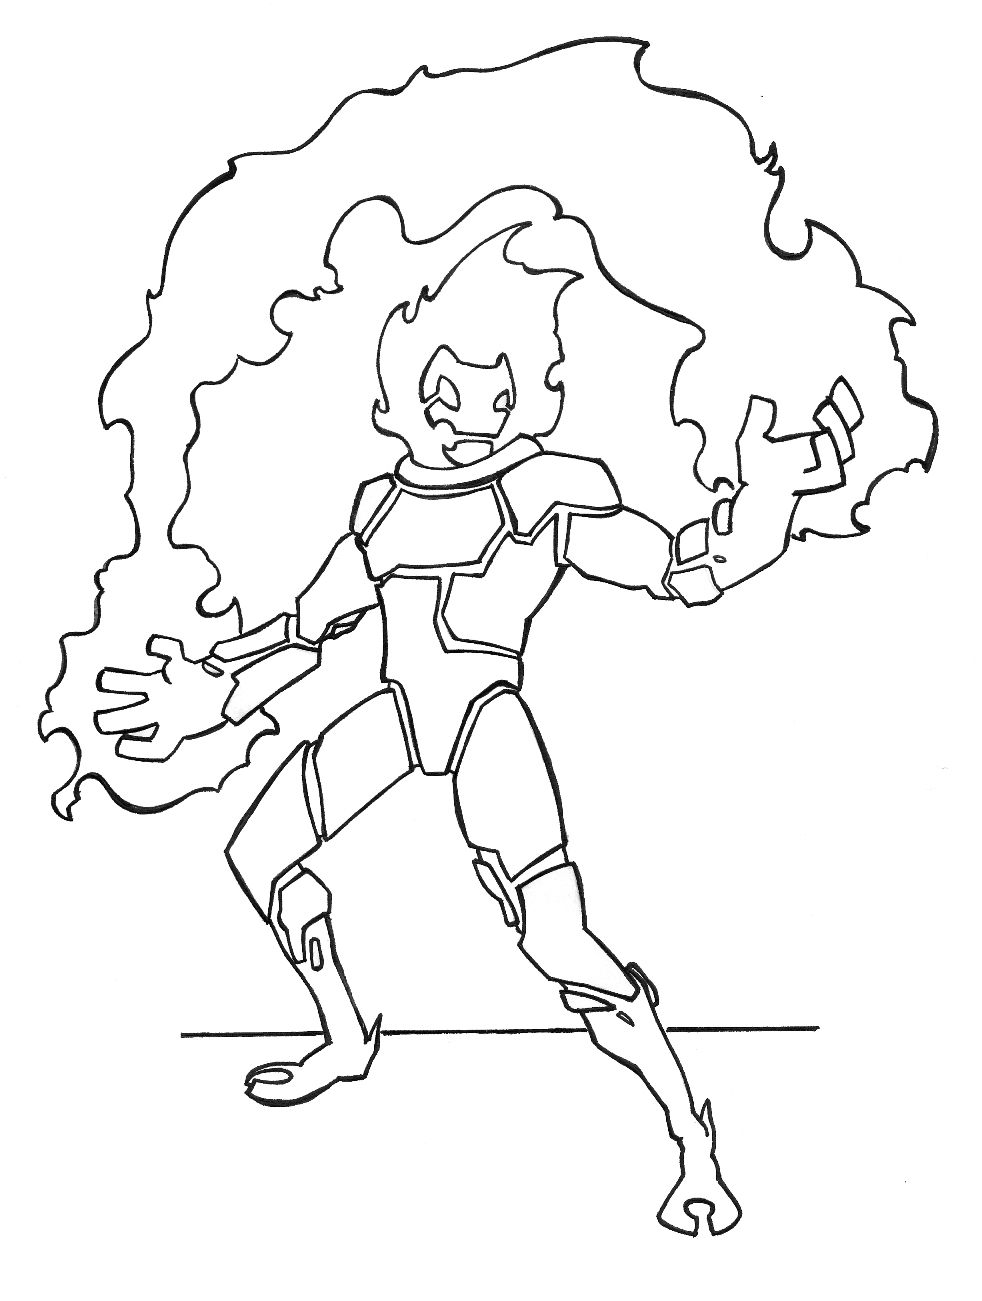 heat blast coloring pages - photo#17